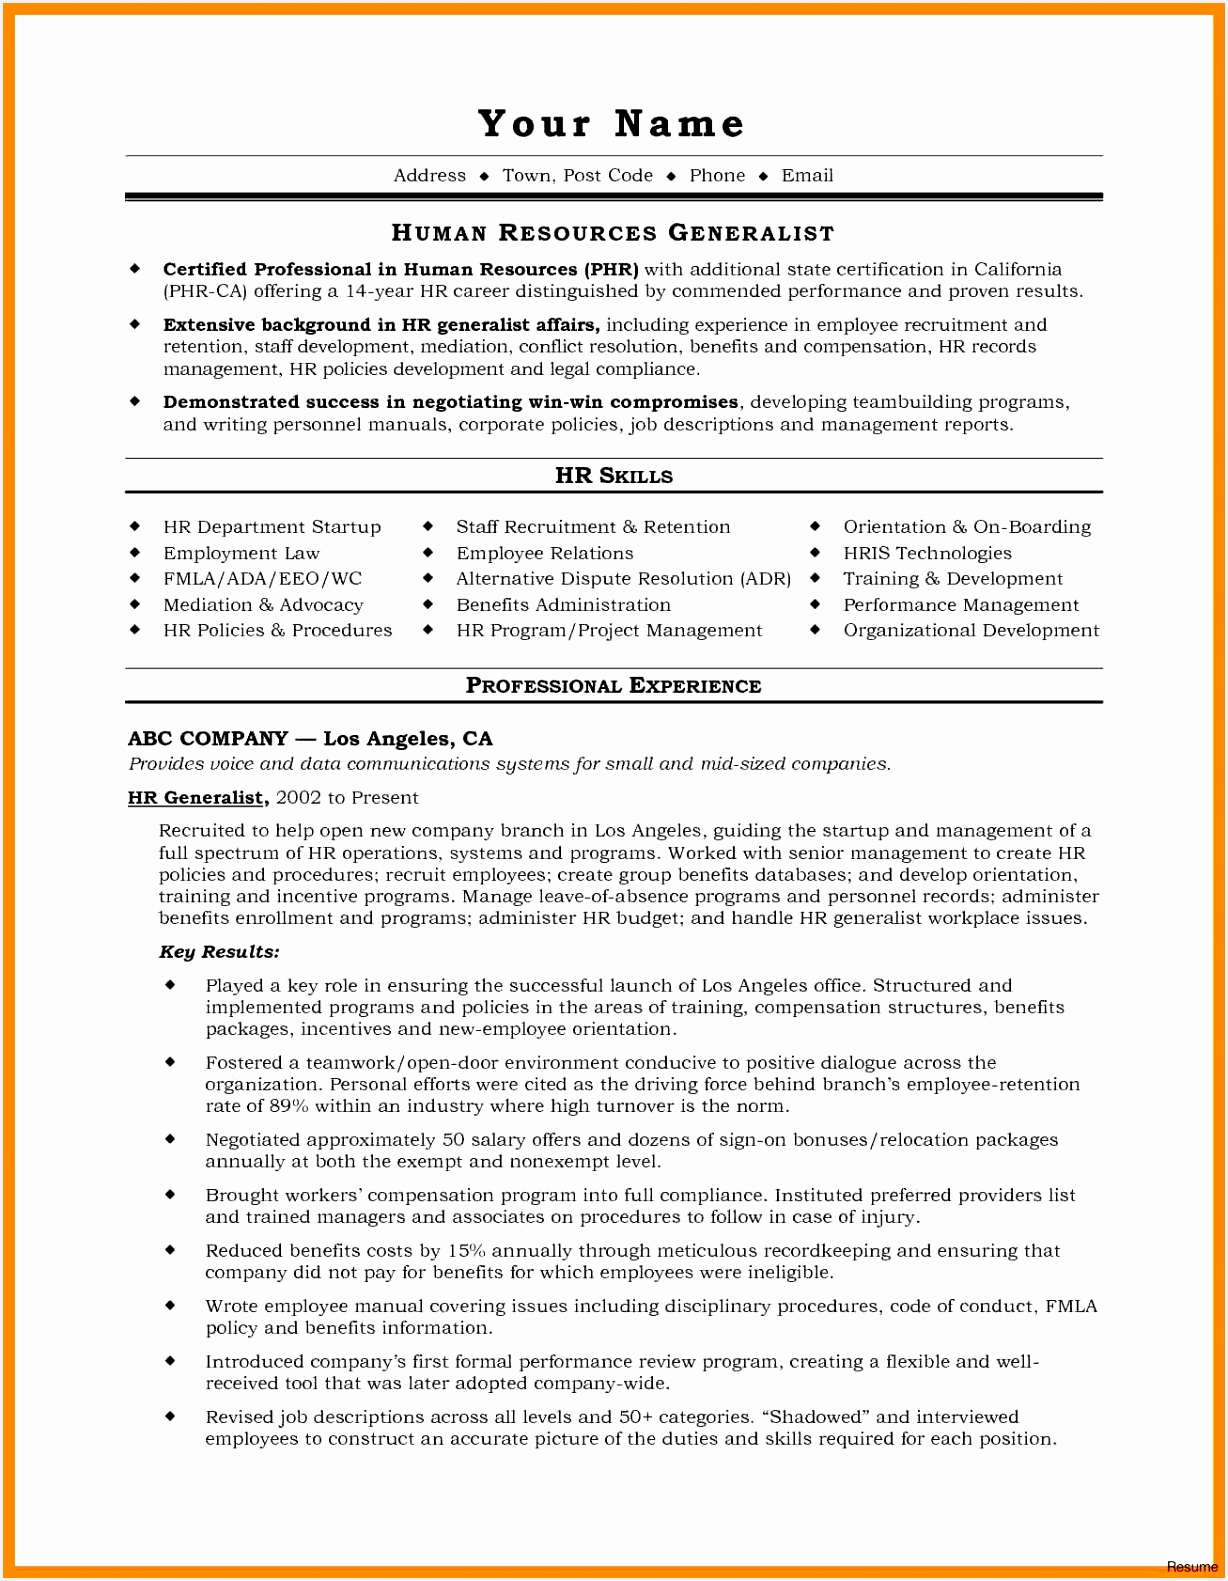 Microsoft Trainer Sample Resume Iqqds Awesome Microsoft Word Resume Templates 2017 Lovely Sample Resume Word File Of Microsoft Trainer Sample Resume F8yka New Resume Examples Skills Best Skills and Interests Resume Sample